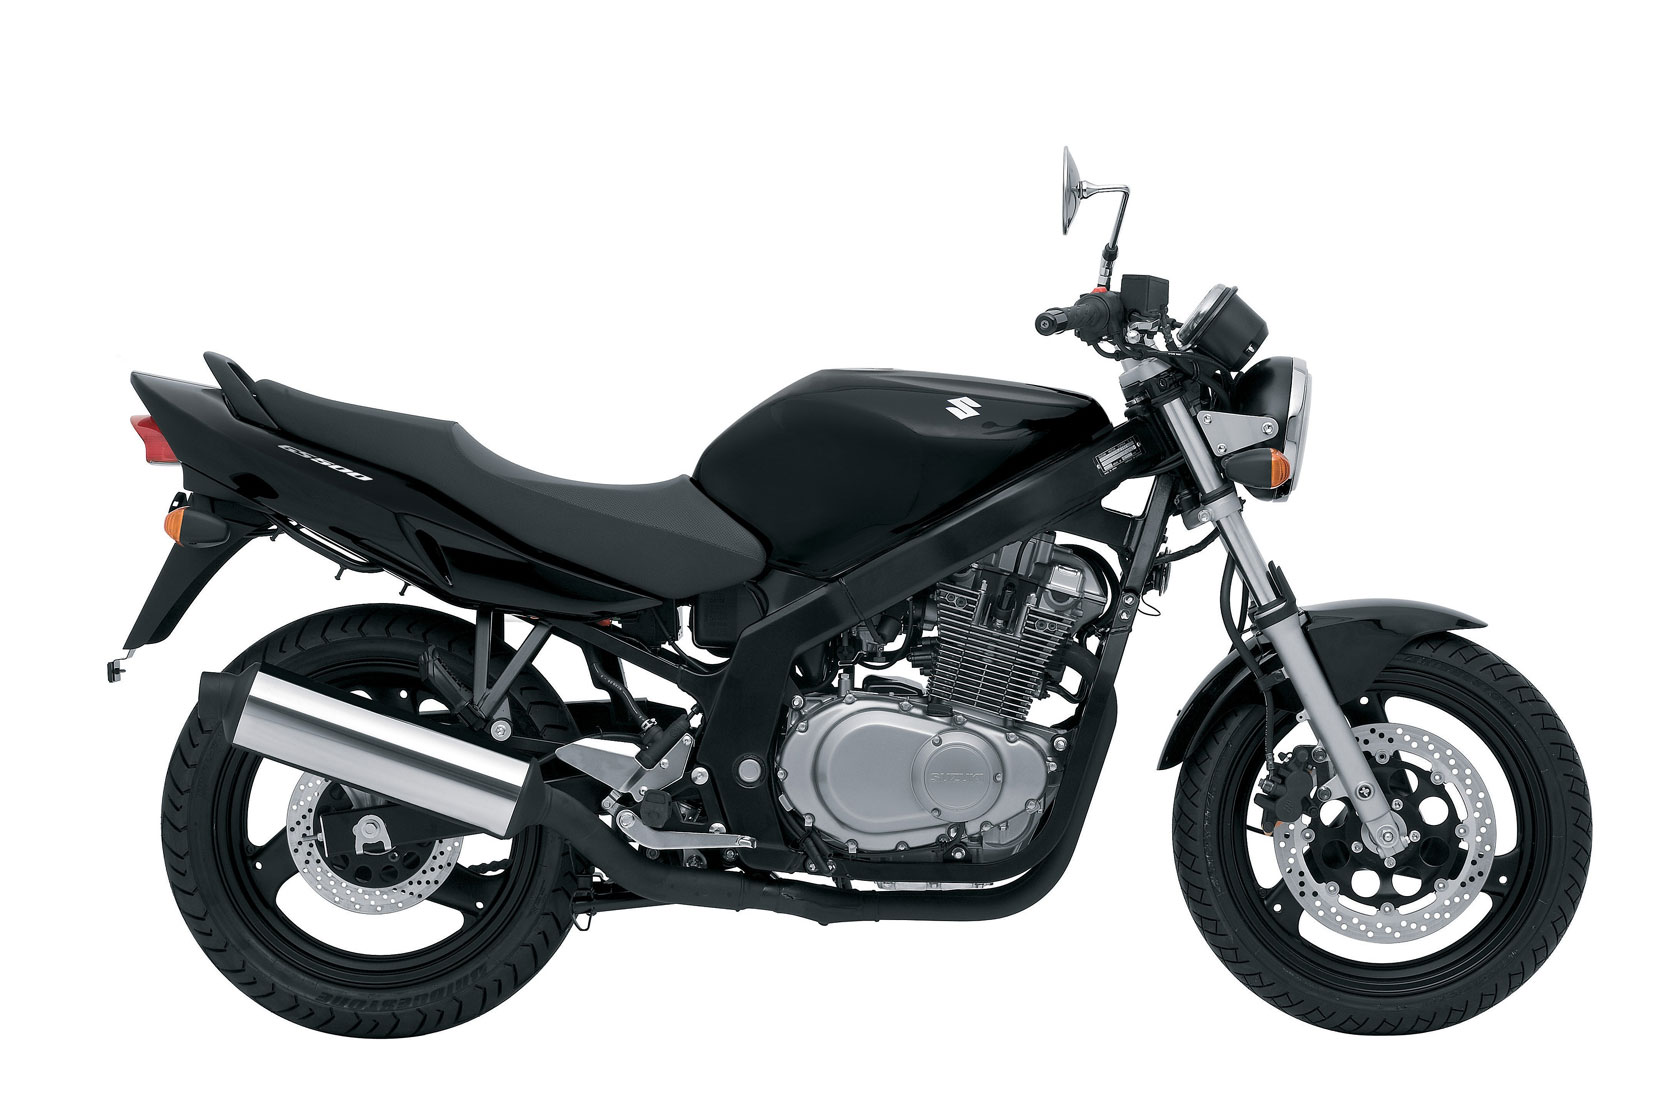 suzuki gs500 specs 2008 2009 autoevolution. Black Bedroom Furniture Sets. Home Design Ideas